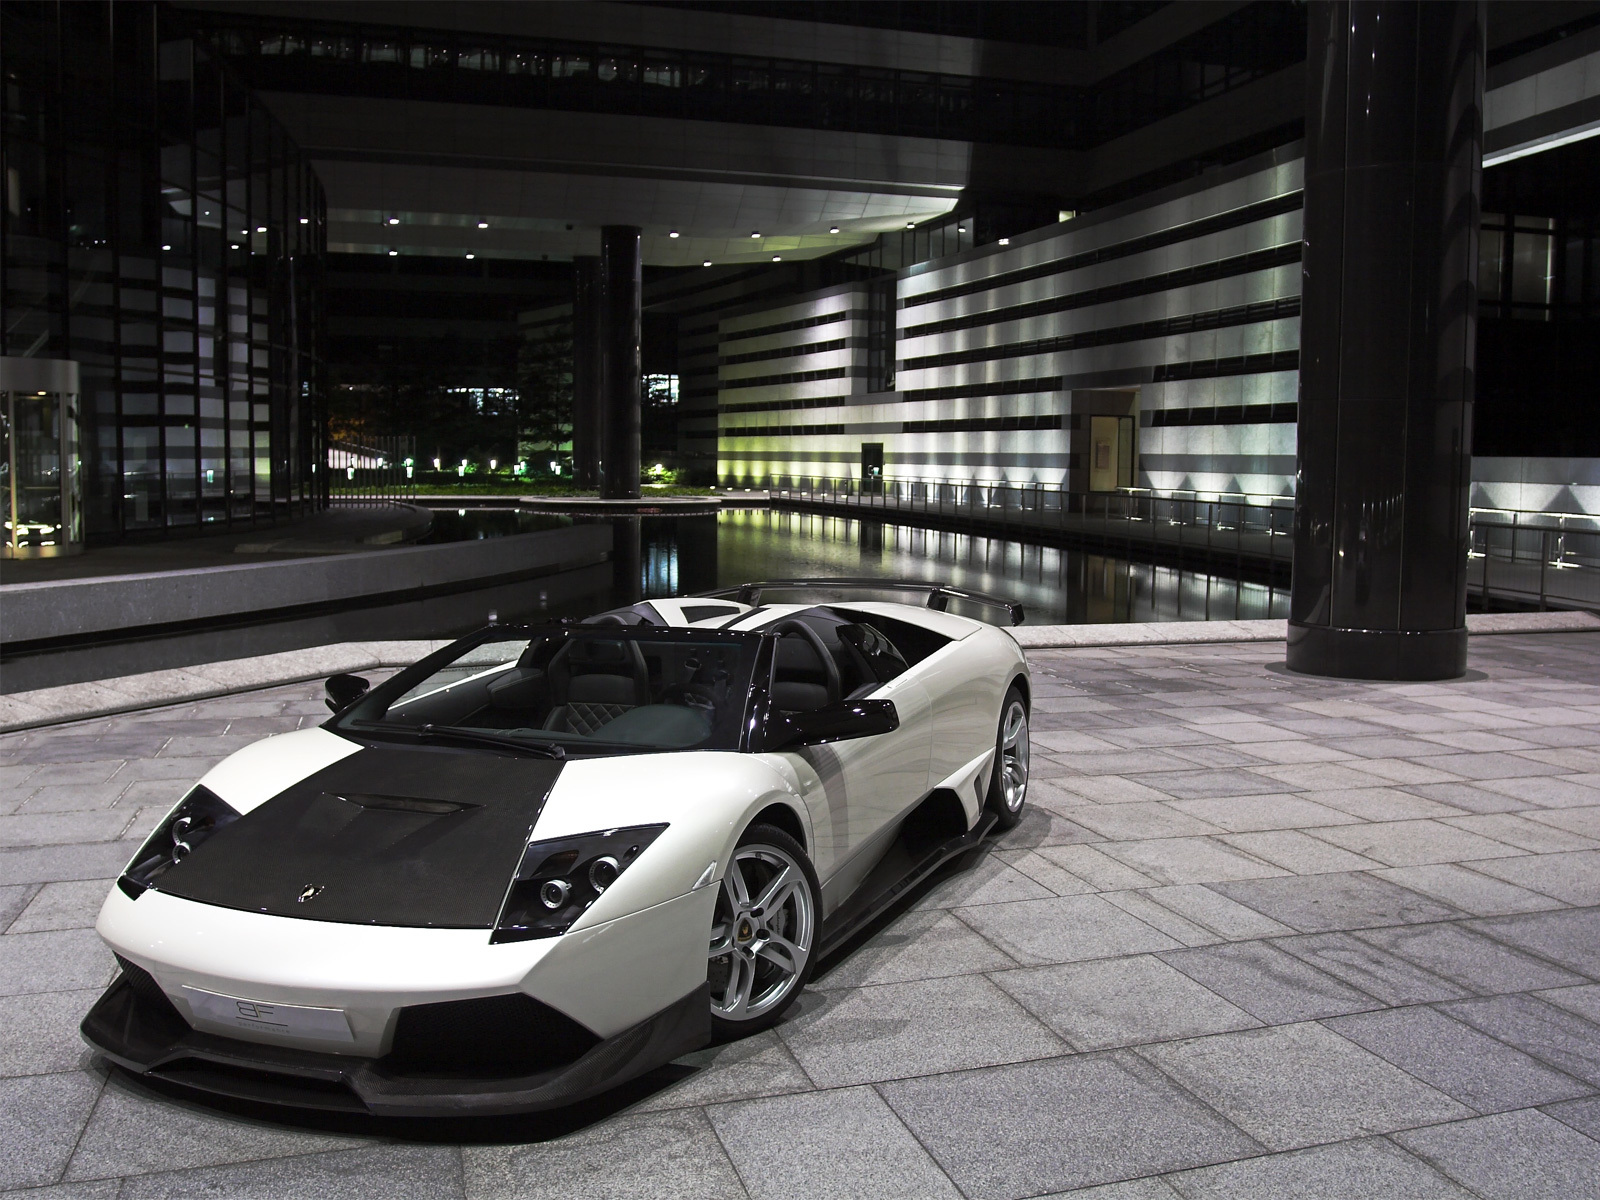 cars Lamborghini vehicles lamborghini HD Wallpaper